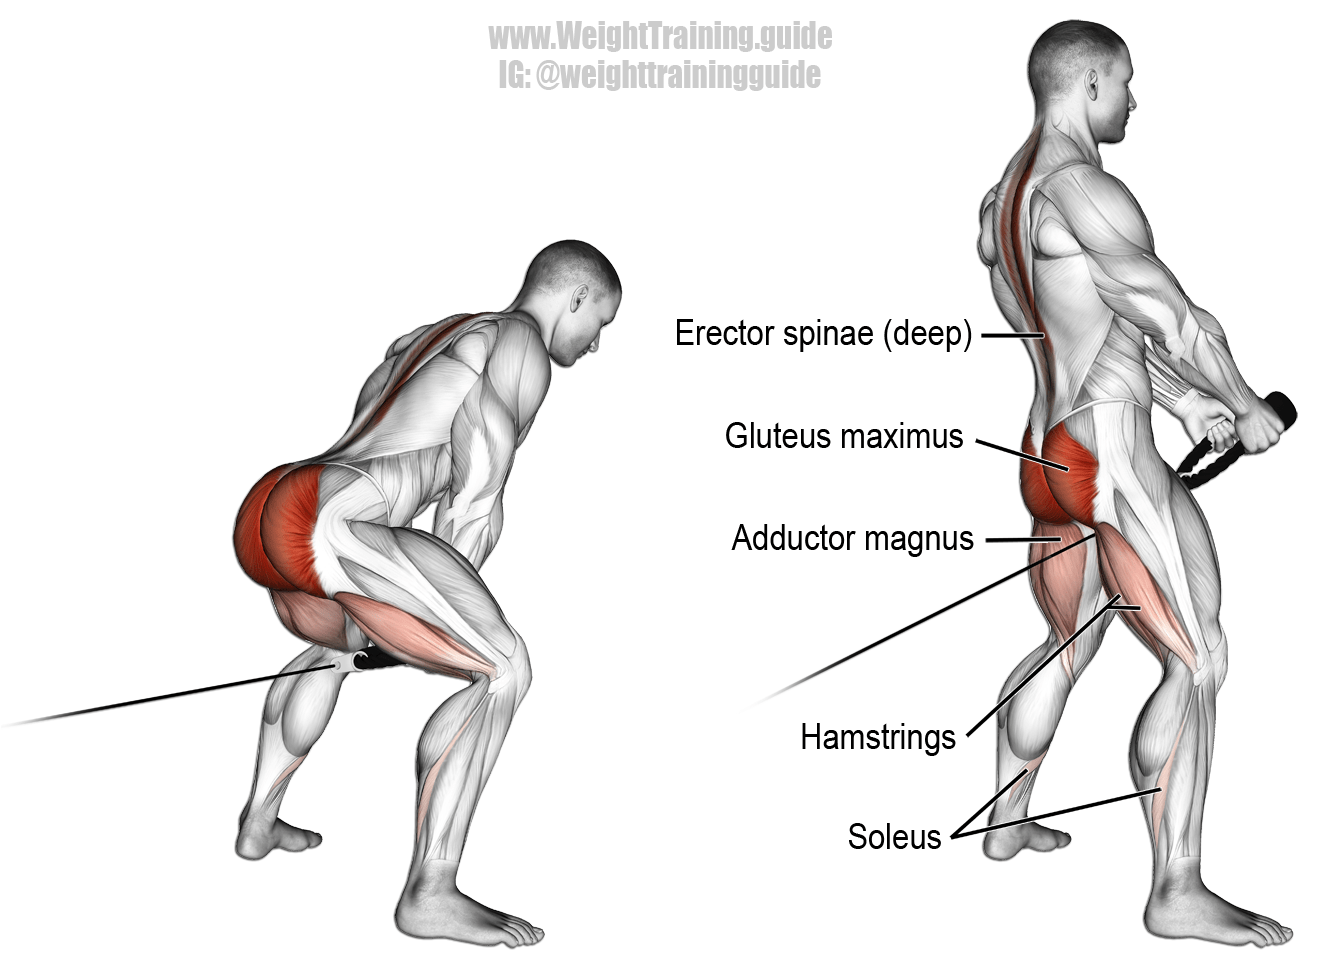 Cable pull through. A compound exercise. Target muscle